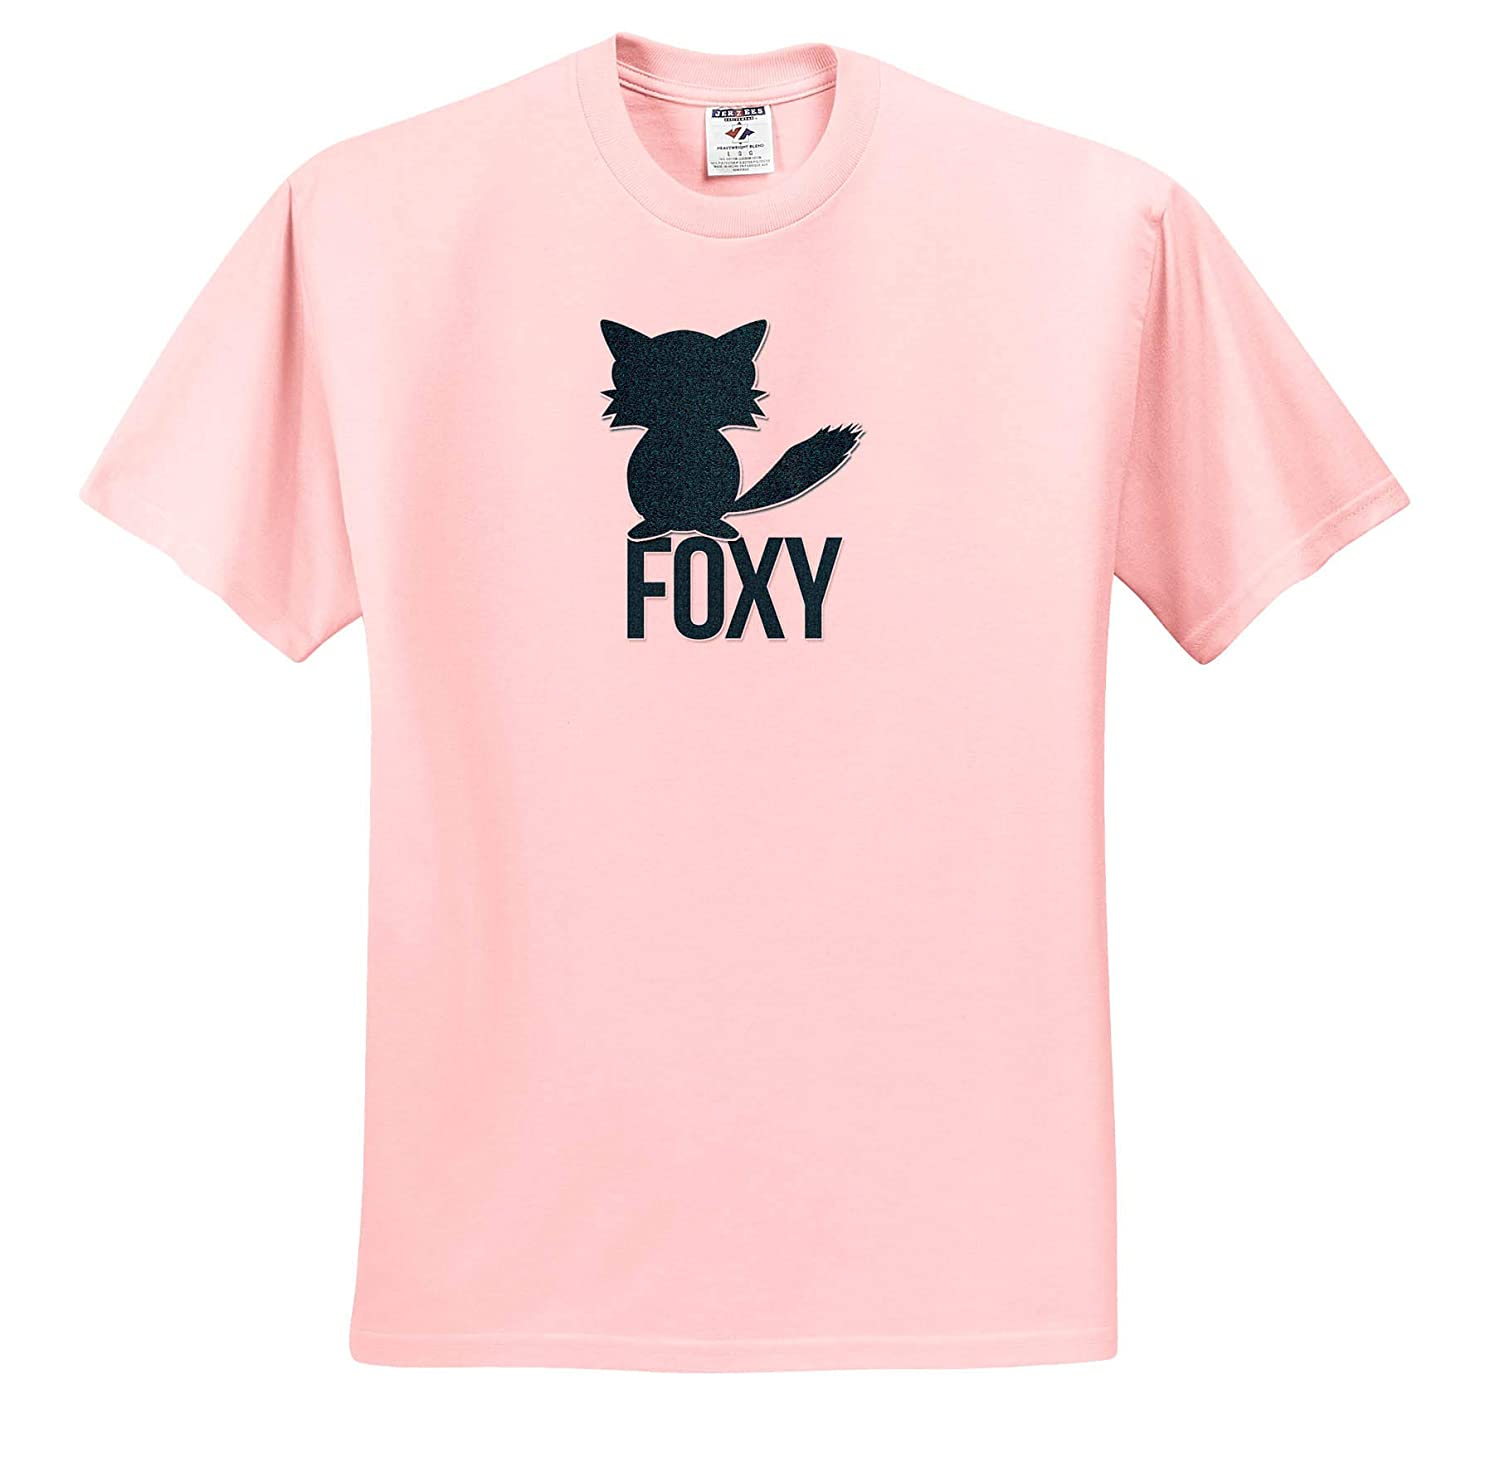 3dRose Doreen Erhardt Wildlife Adult T-Shirt XL Foxy Funny Green Fox Play on Words for Her ts/_310178